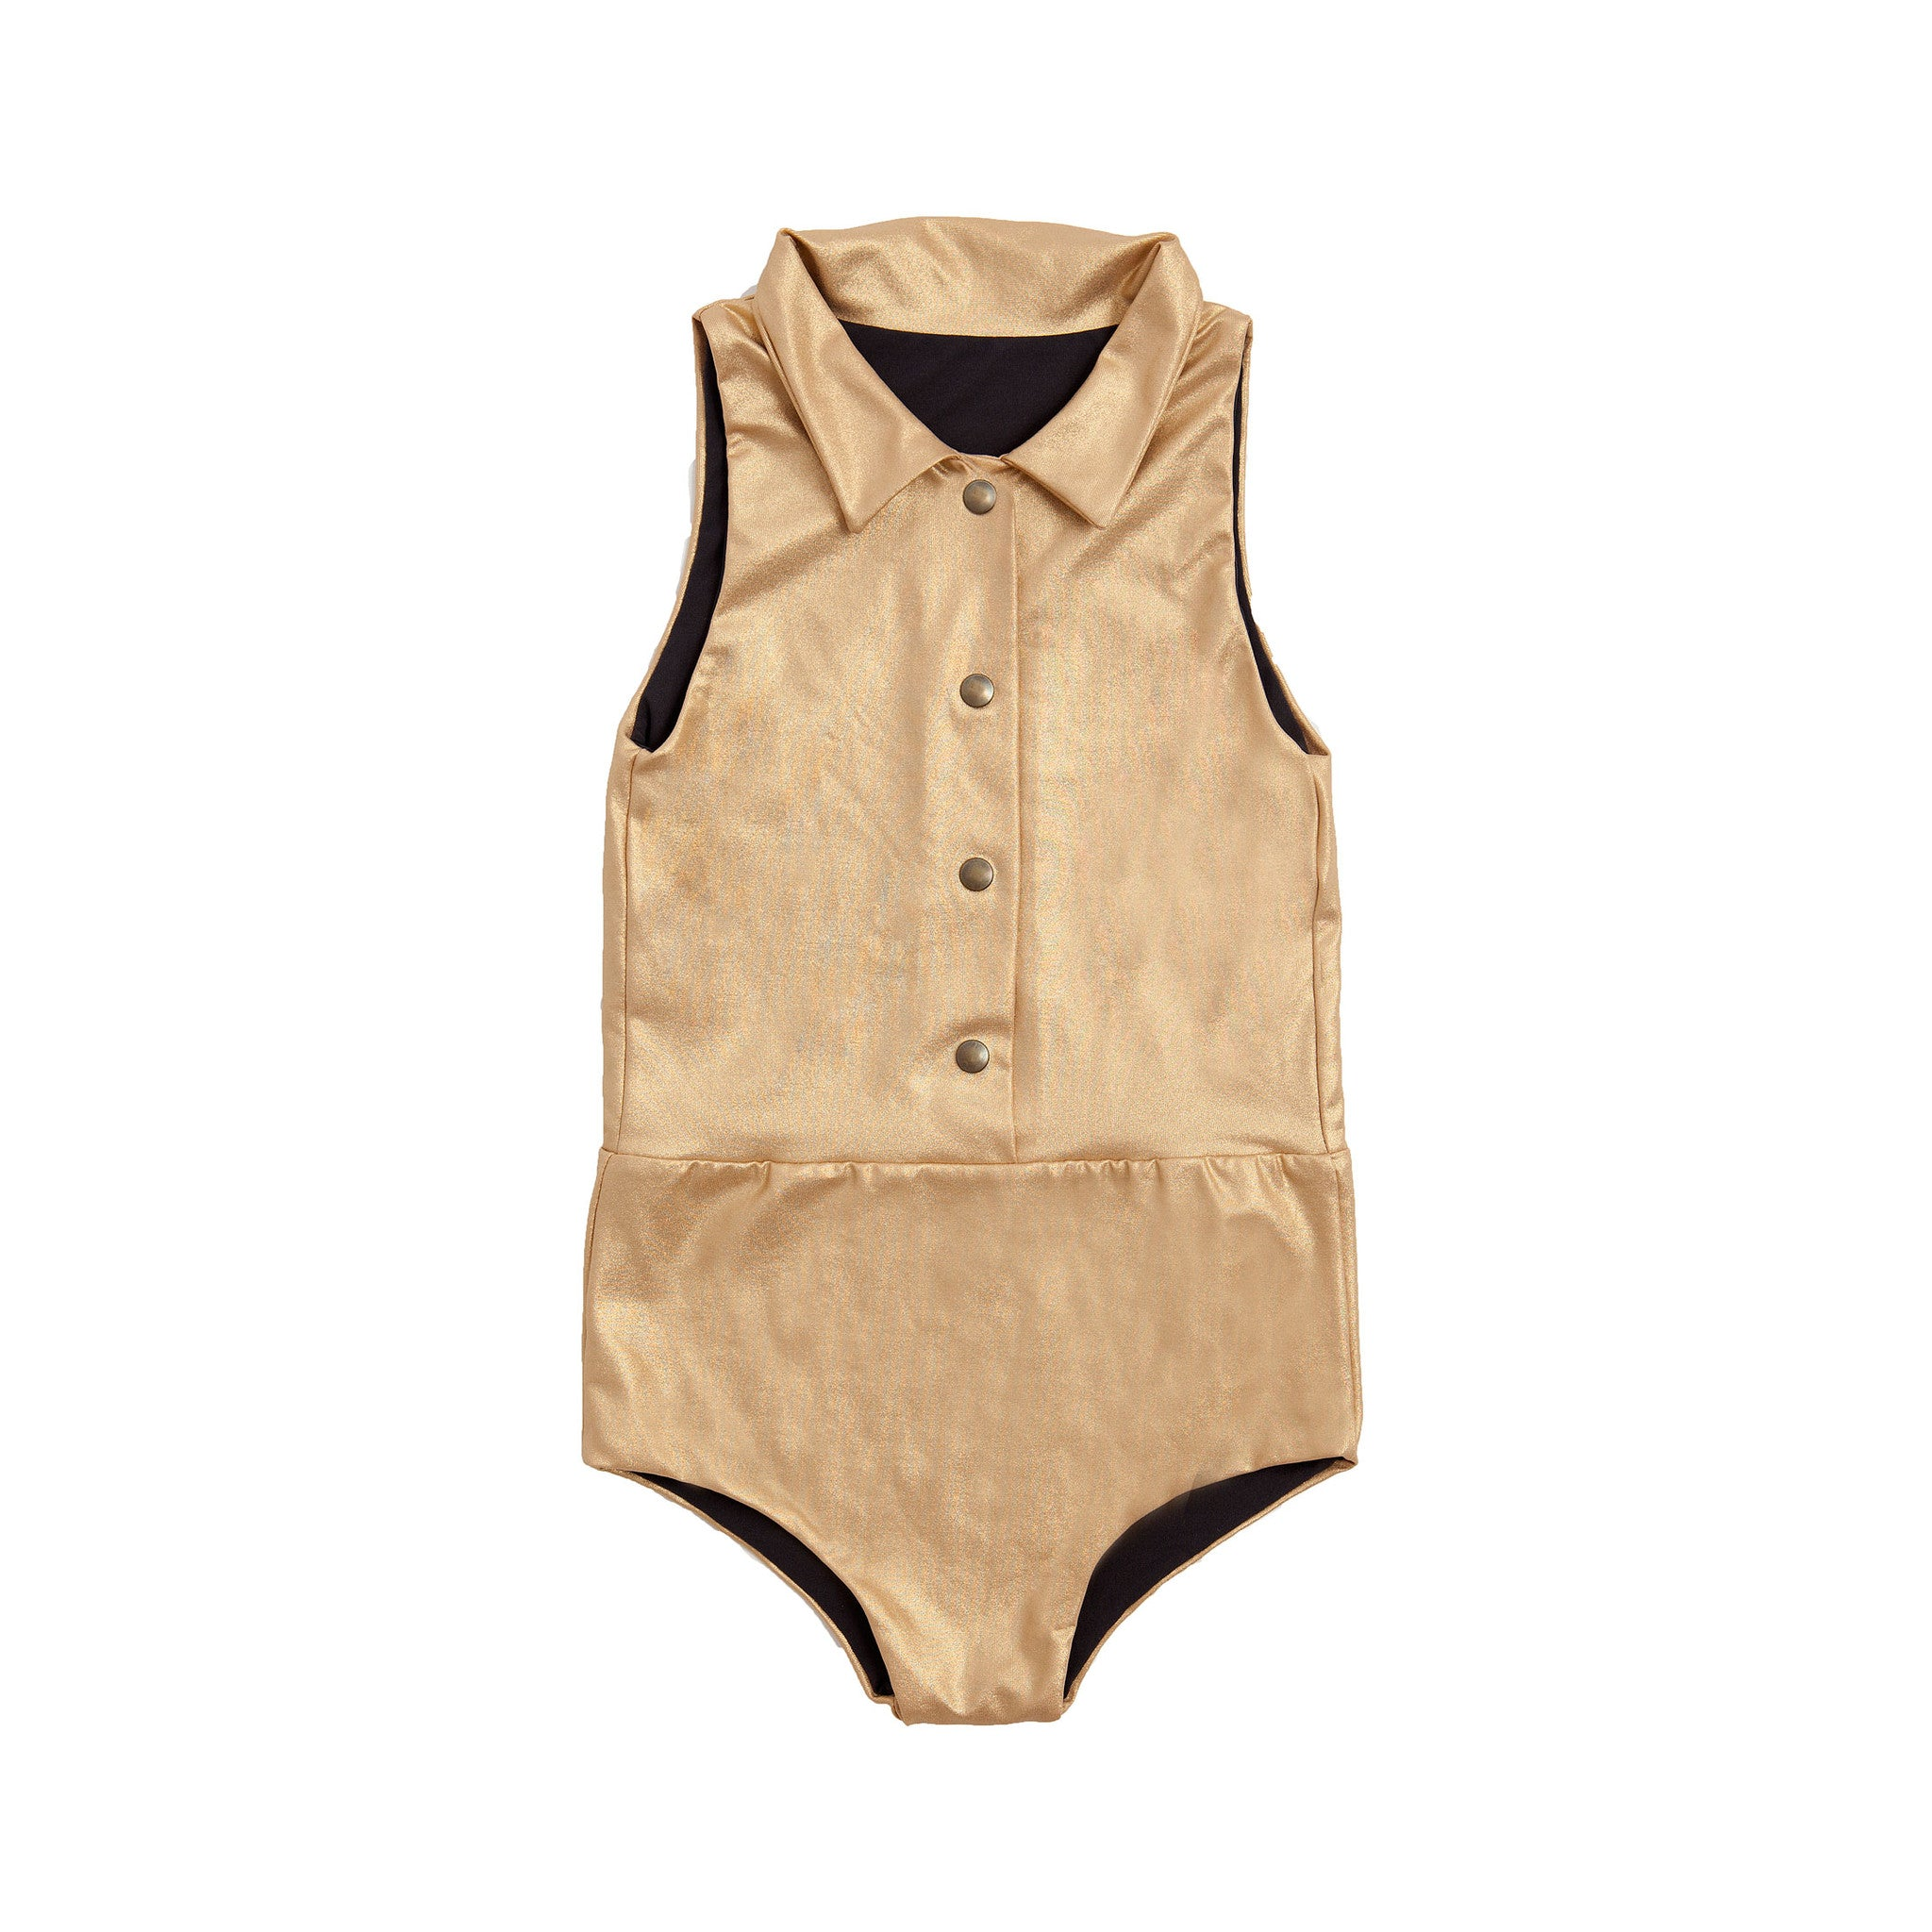 Little Creative Factory Gold Explorer Bathing Suit - Ladida